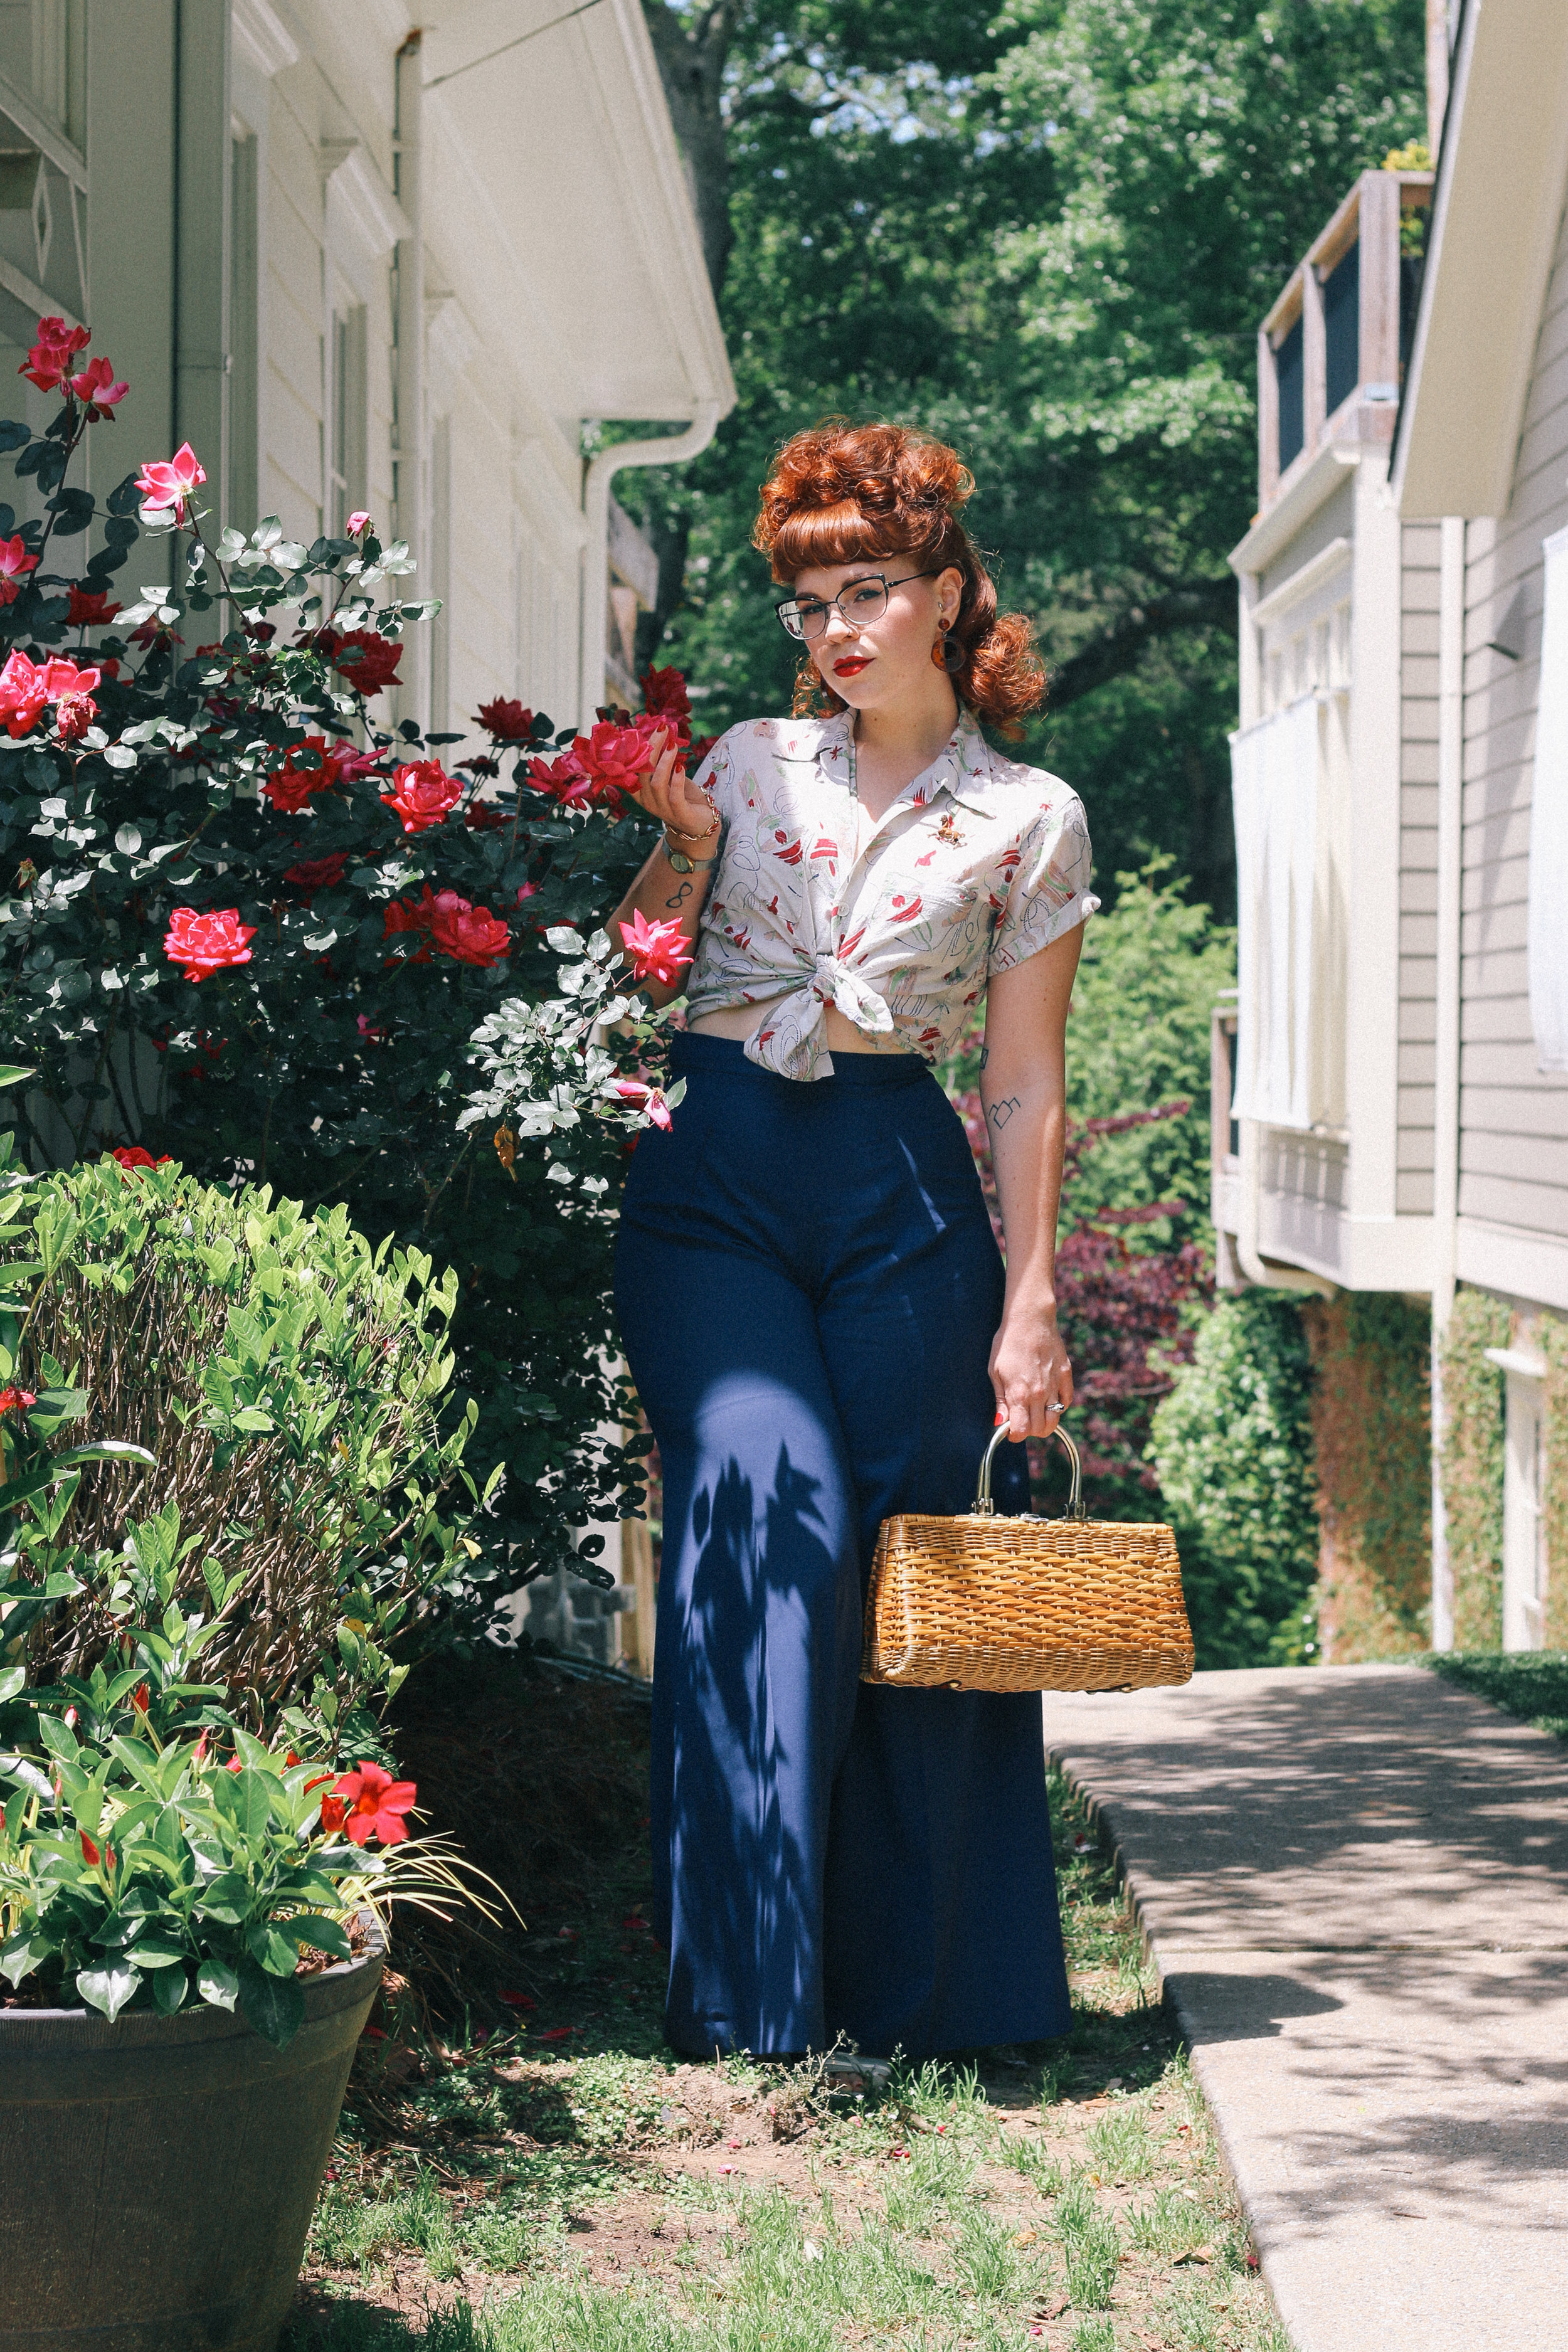 20180503_BAPPhotography_AtlantaPhotographer_VintageFashion_48.jpg